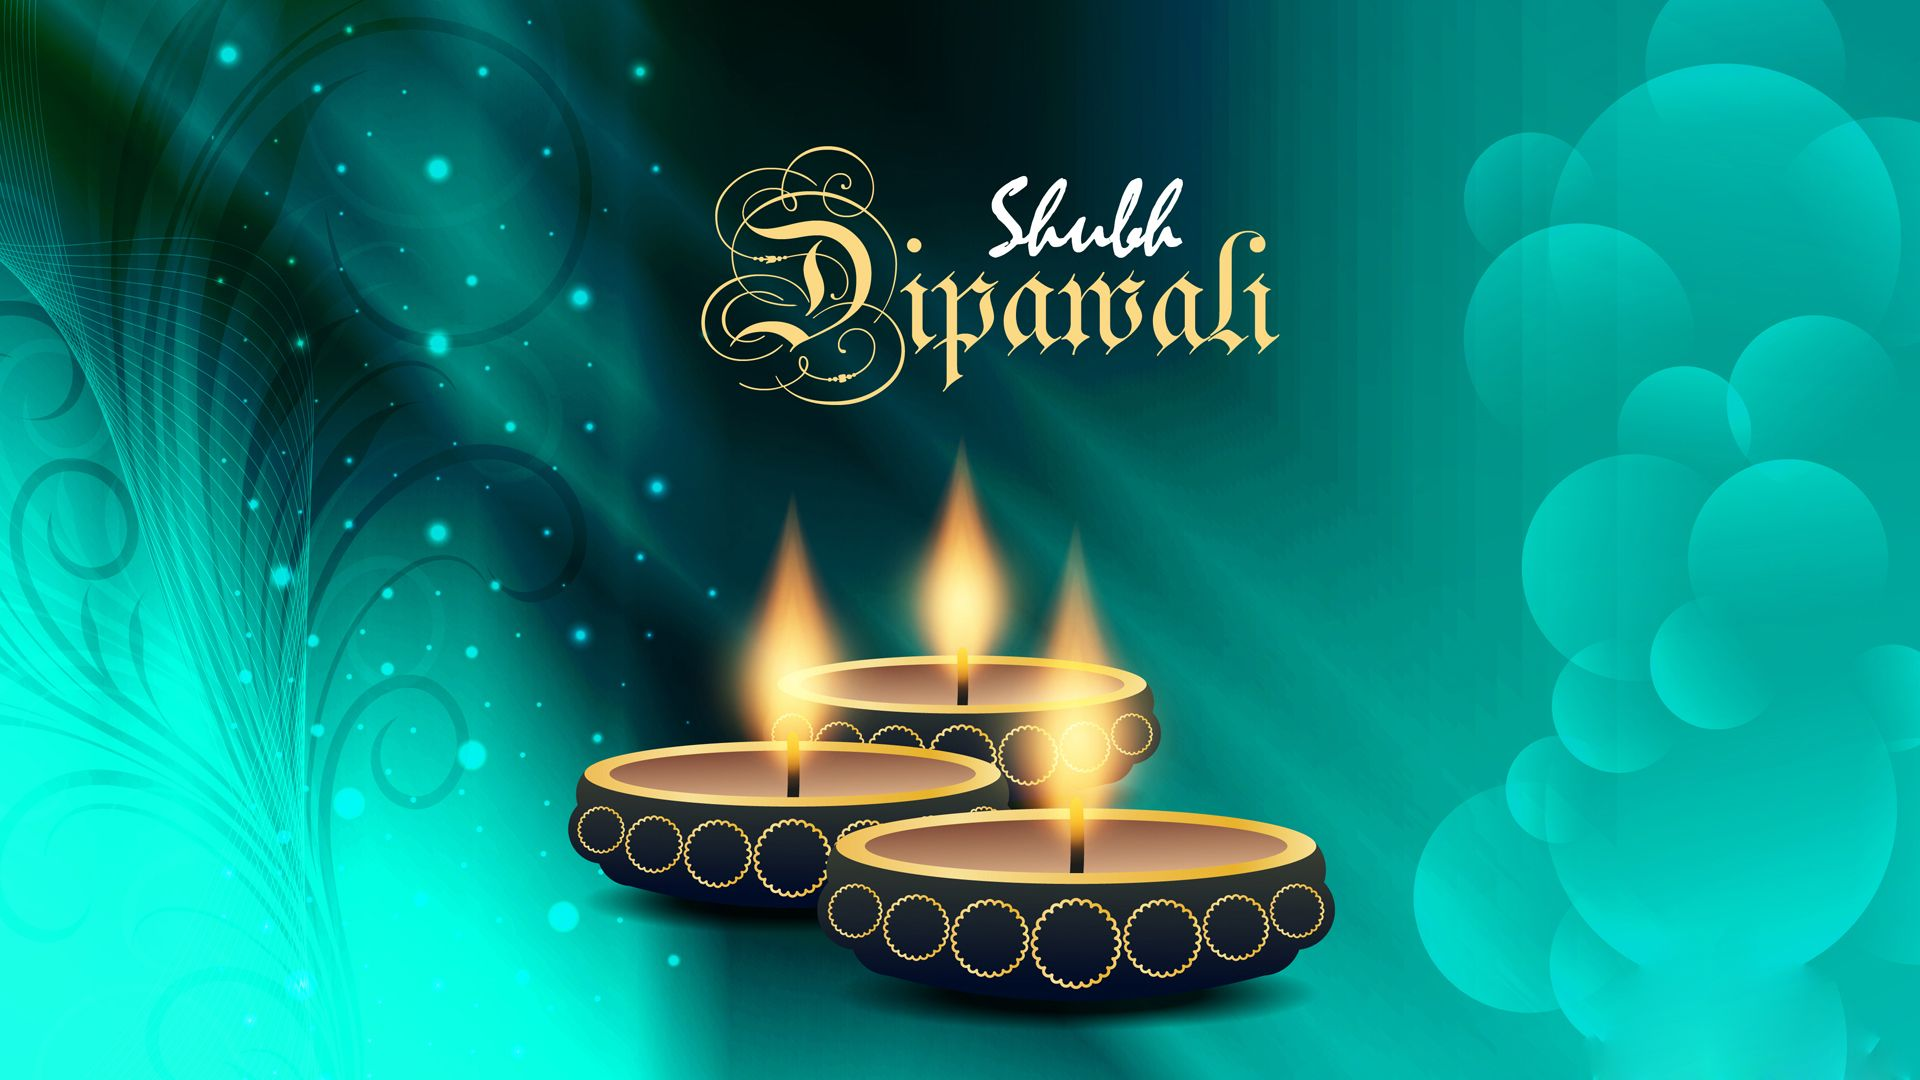 Download free happy diwali wallpapers 2015 for wishing your download free happy diwali wallpapers 2015 for wishing your relatives and family we have collectbest kristyandbryce Images